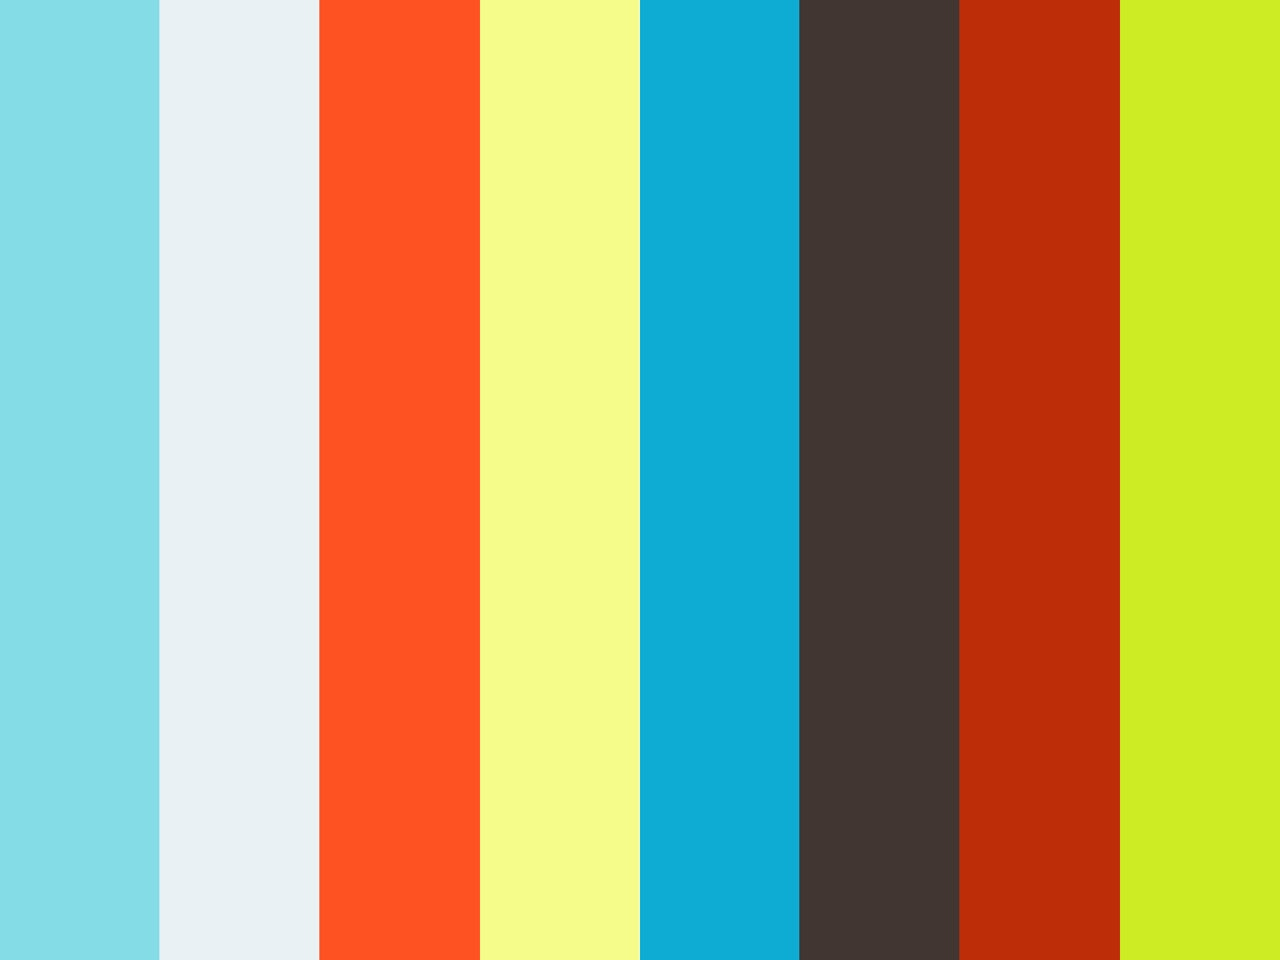 Color Meanings Prepossessing Colours And Their Meanings On Vimeo Design Decoration